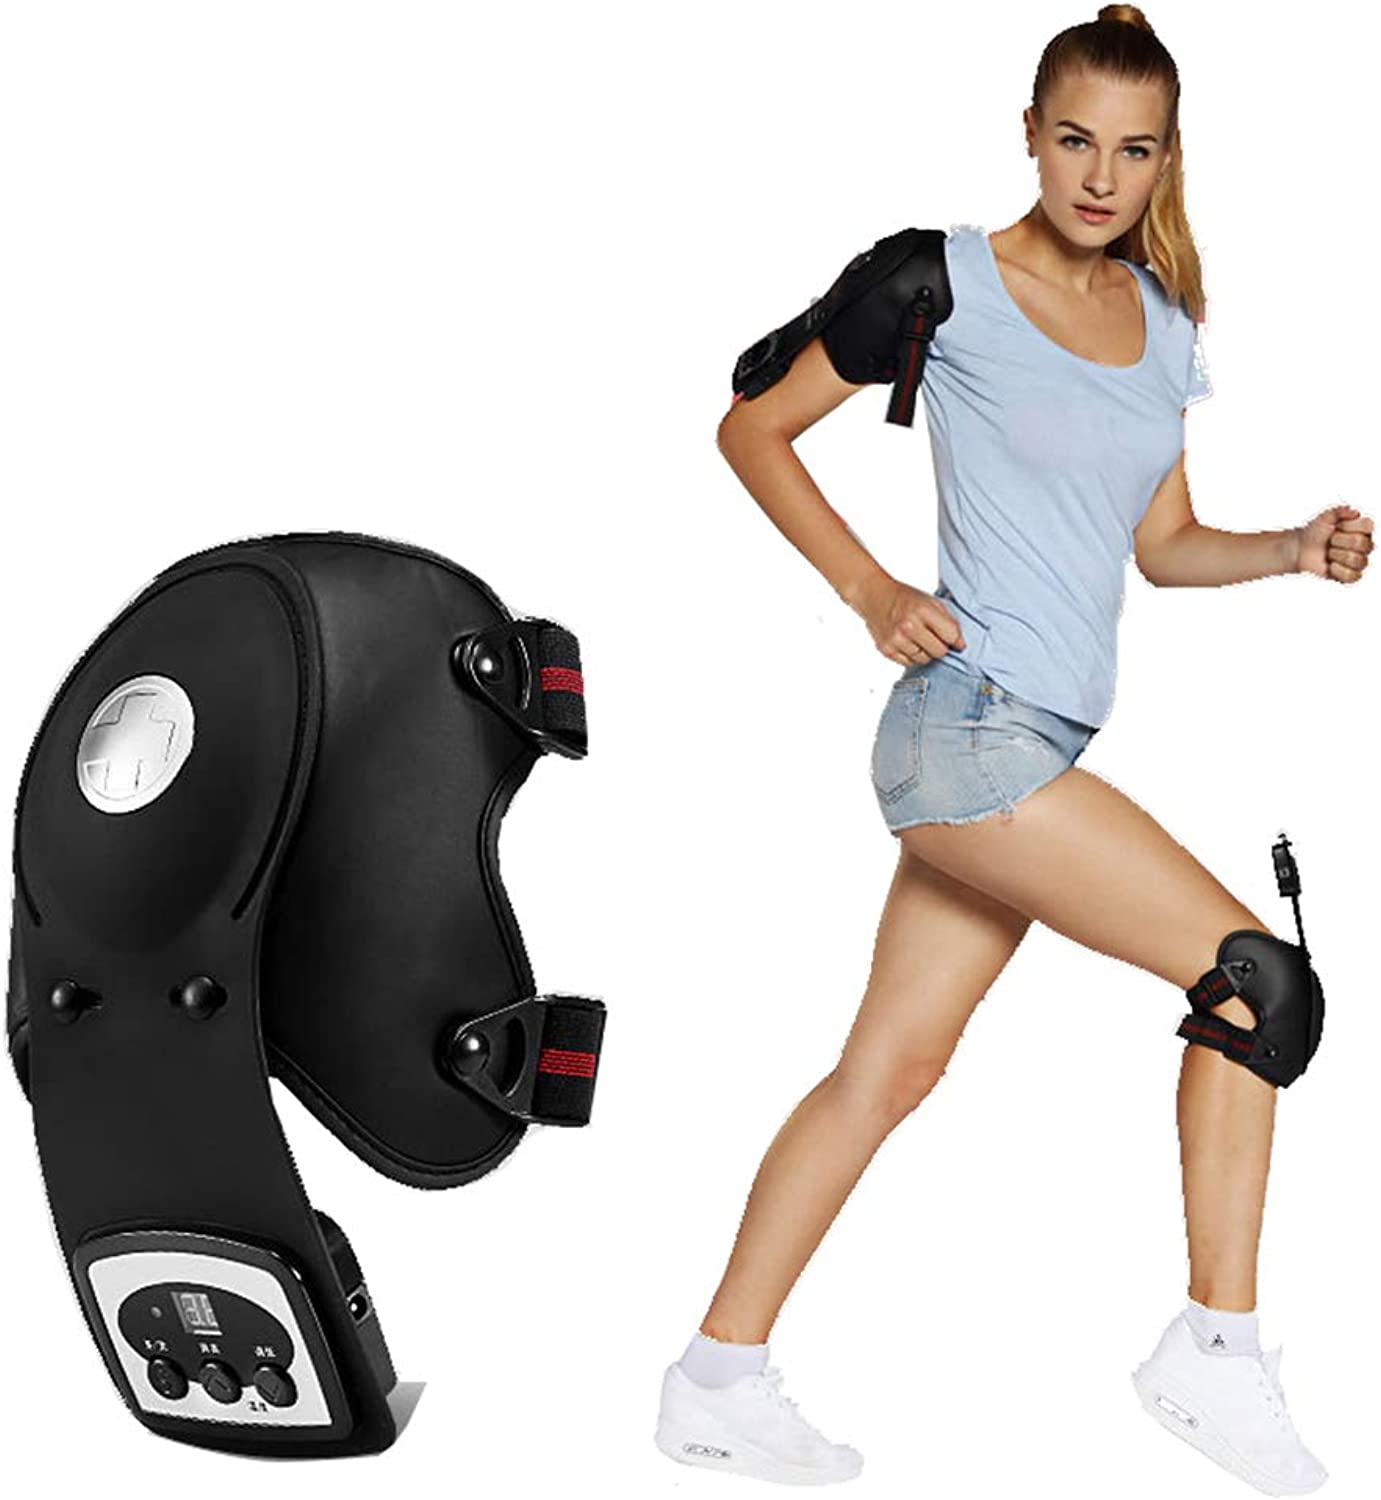 Heat Therapy, Knee Physiotherapy Massager Fit Heated and Vibration Massage Knee and Joint Pain Relief Massager, Gift for Mom Dad Unisex Adults